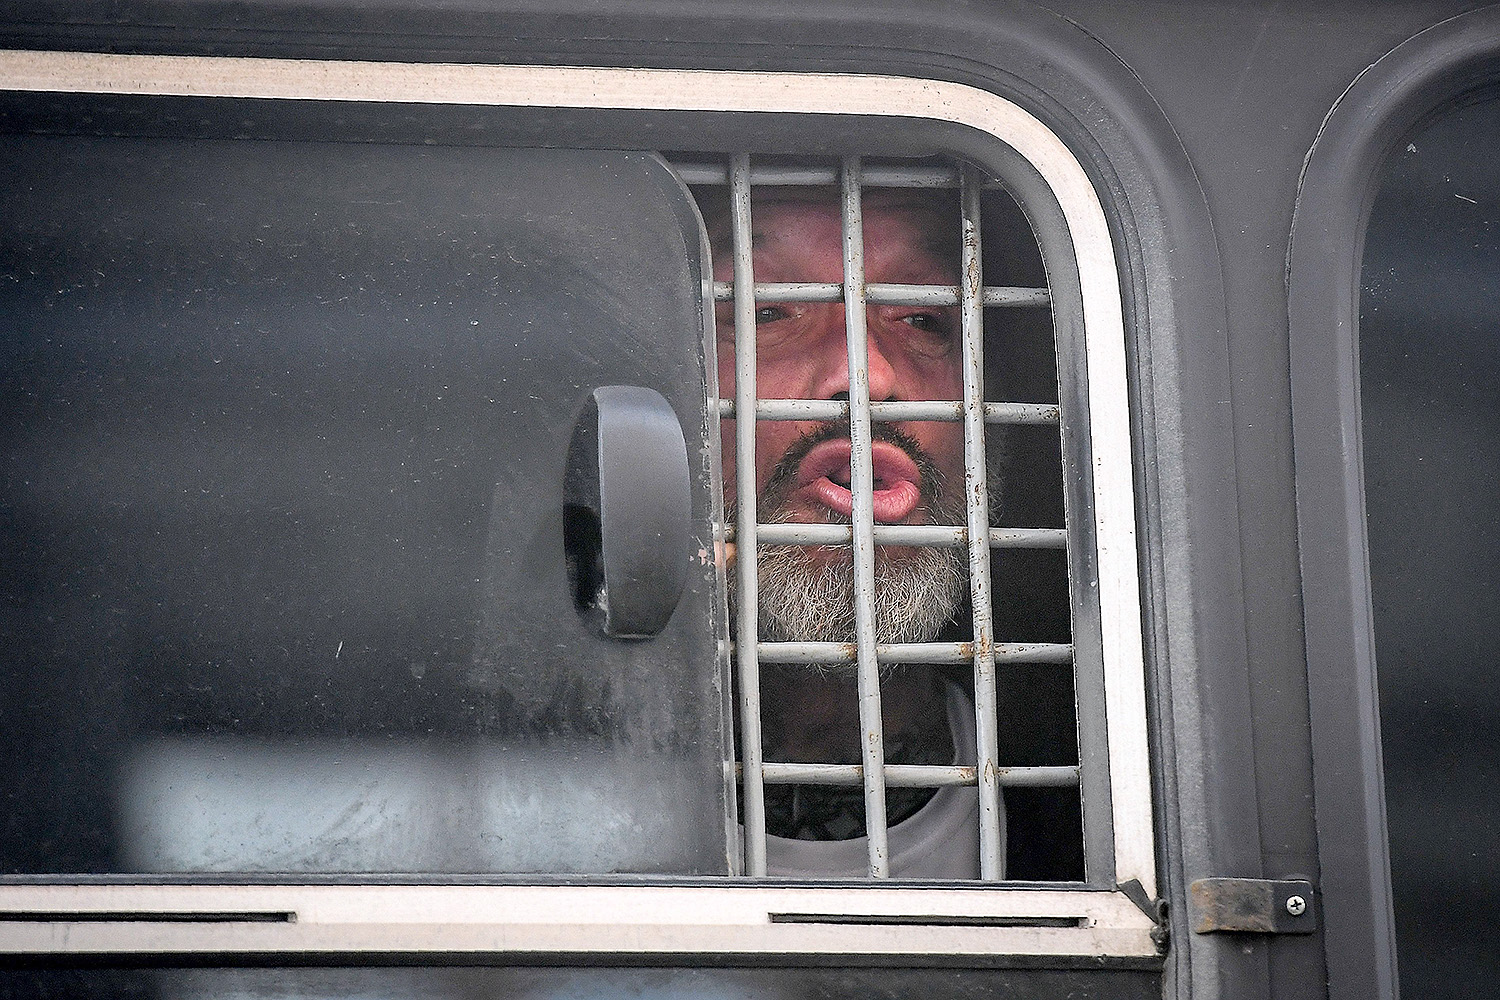 A detained protester speaks through the window of a police bus during an unsanctioned rally at the headquarters of the Federal Security Service in central Moscow on March 14. Moscow police detained dozens of people at a protest demanding that political prisoners be freed. YURI KADOBNOV/AFP via Getty Images